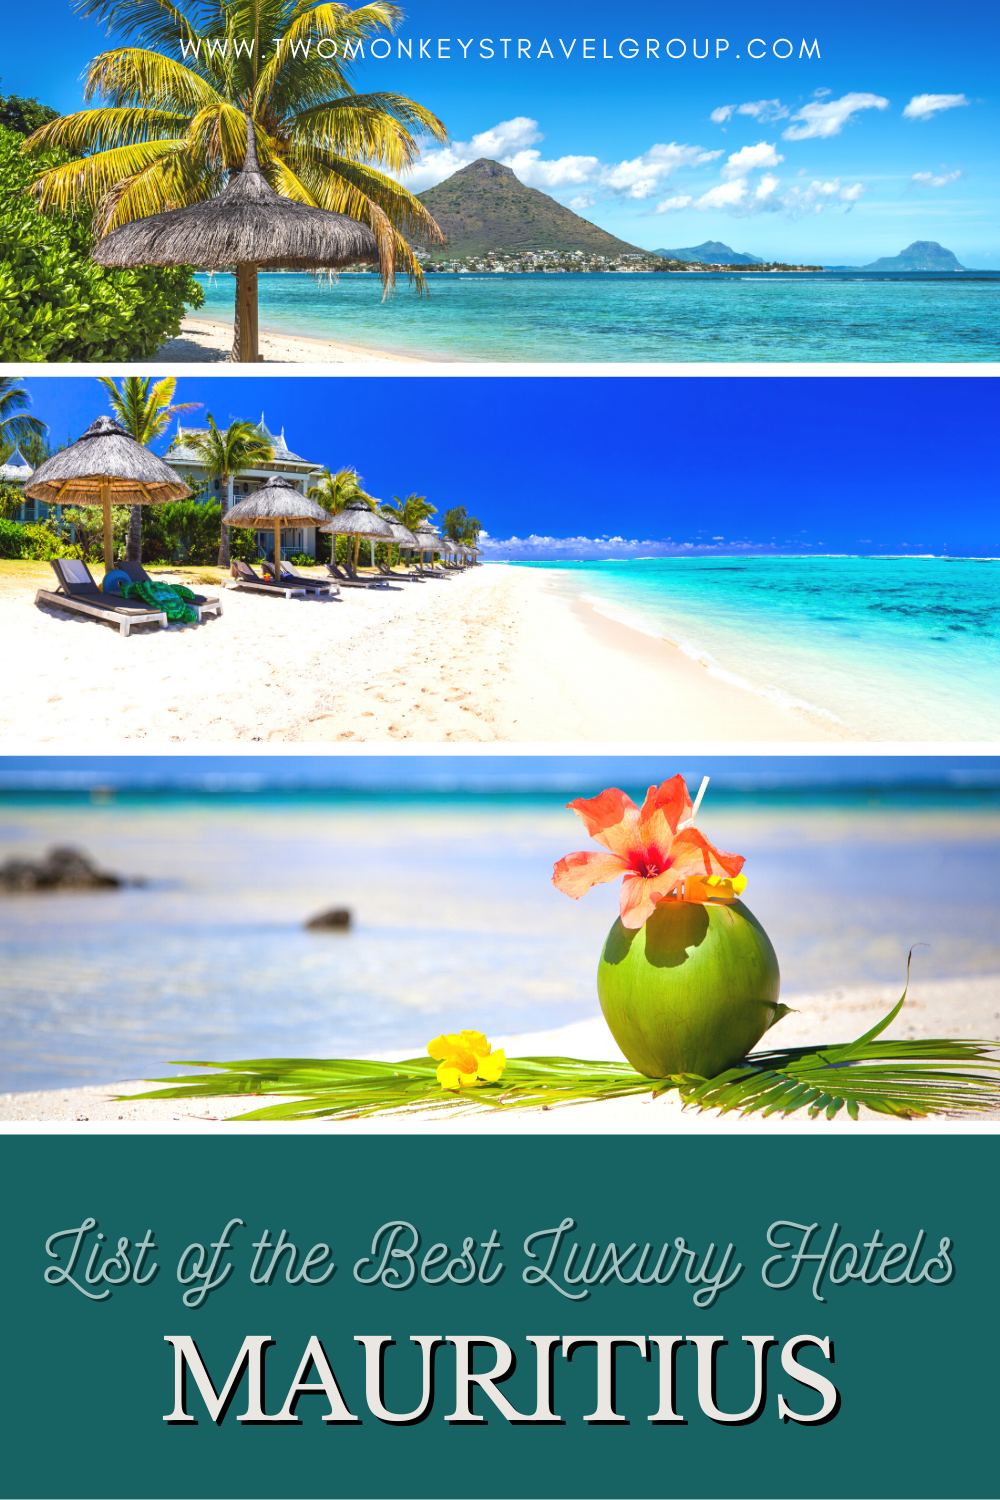 List of the Best Luxury Hotels in Mauritius